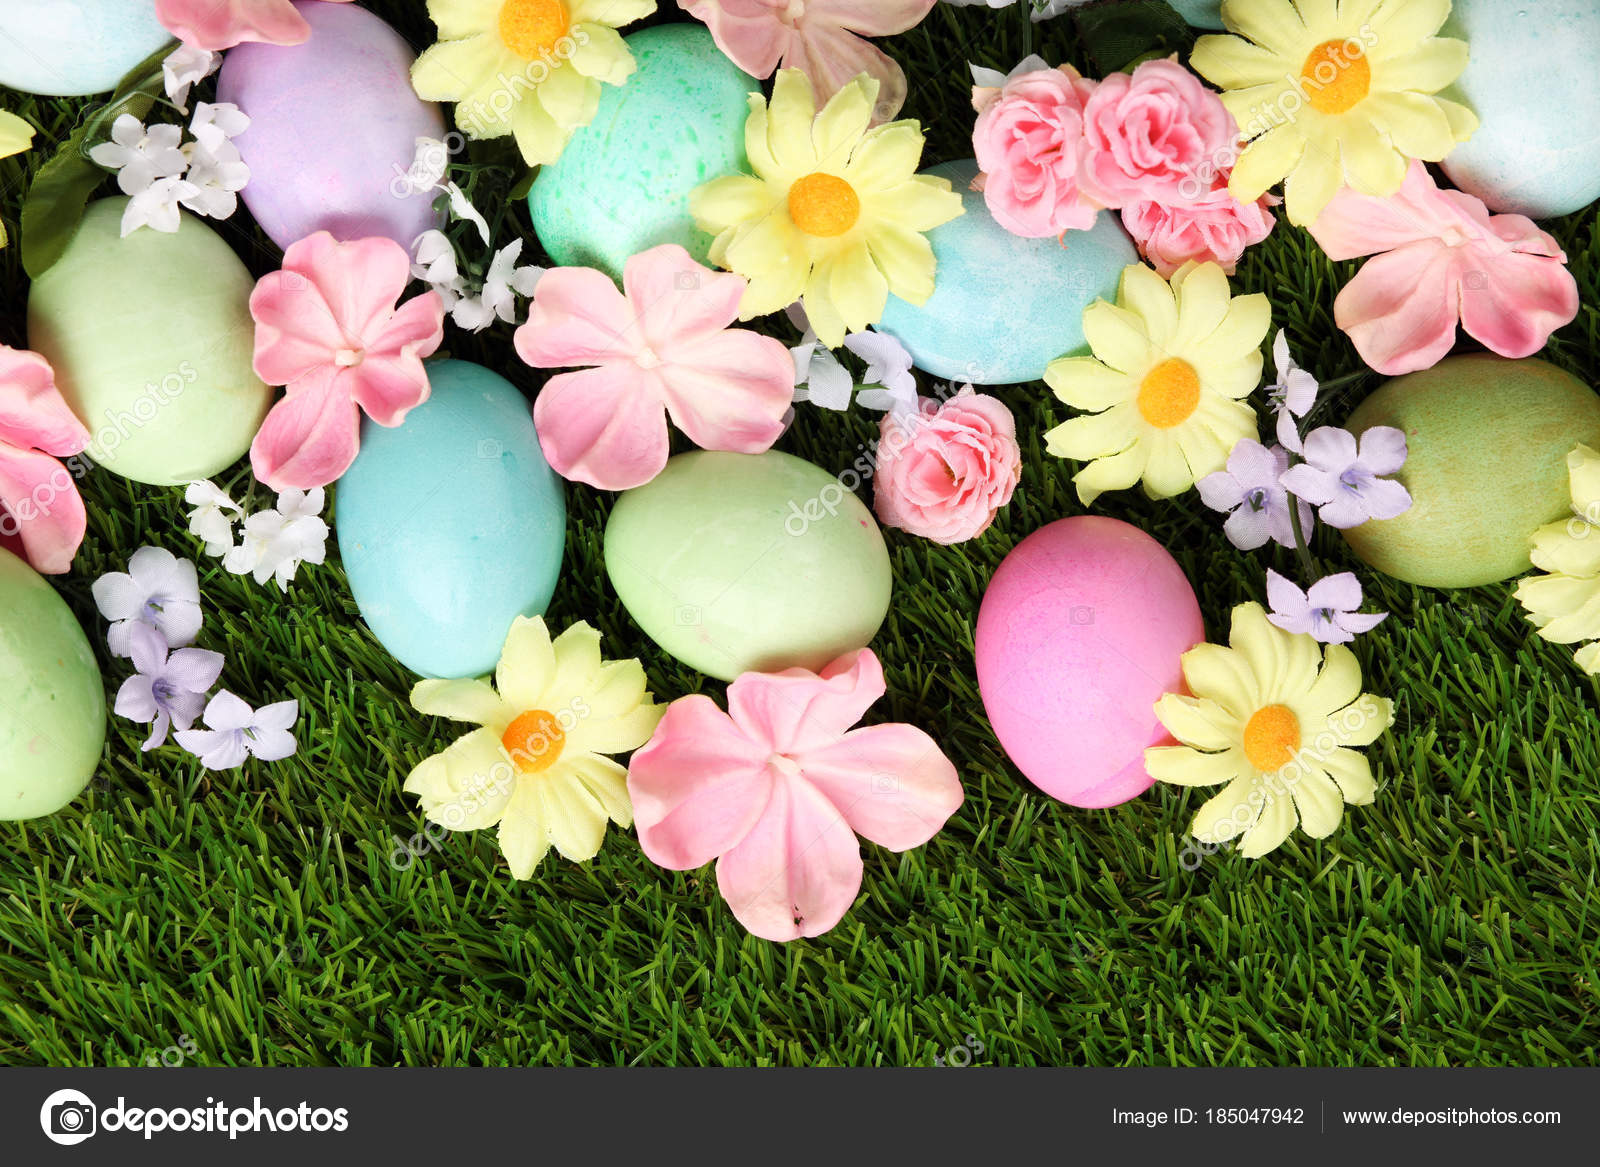 Colorful Easter Eggs On Grass With Flowers Background Stock Photo